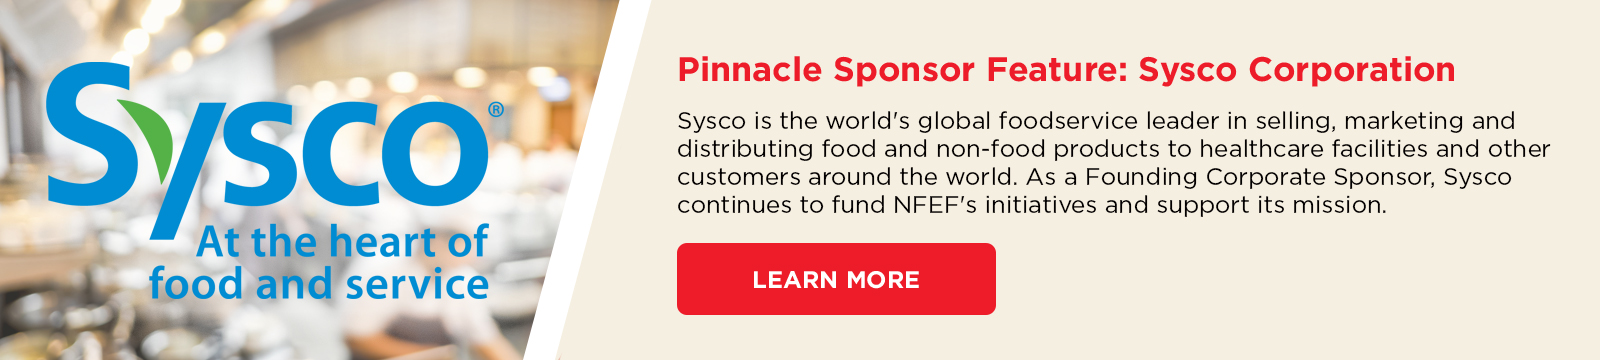 Pinnacle Sponsor - Sysco Corporation